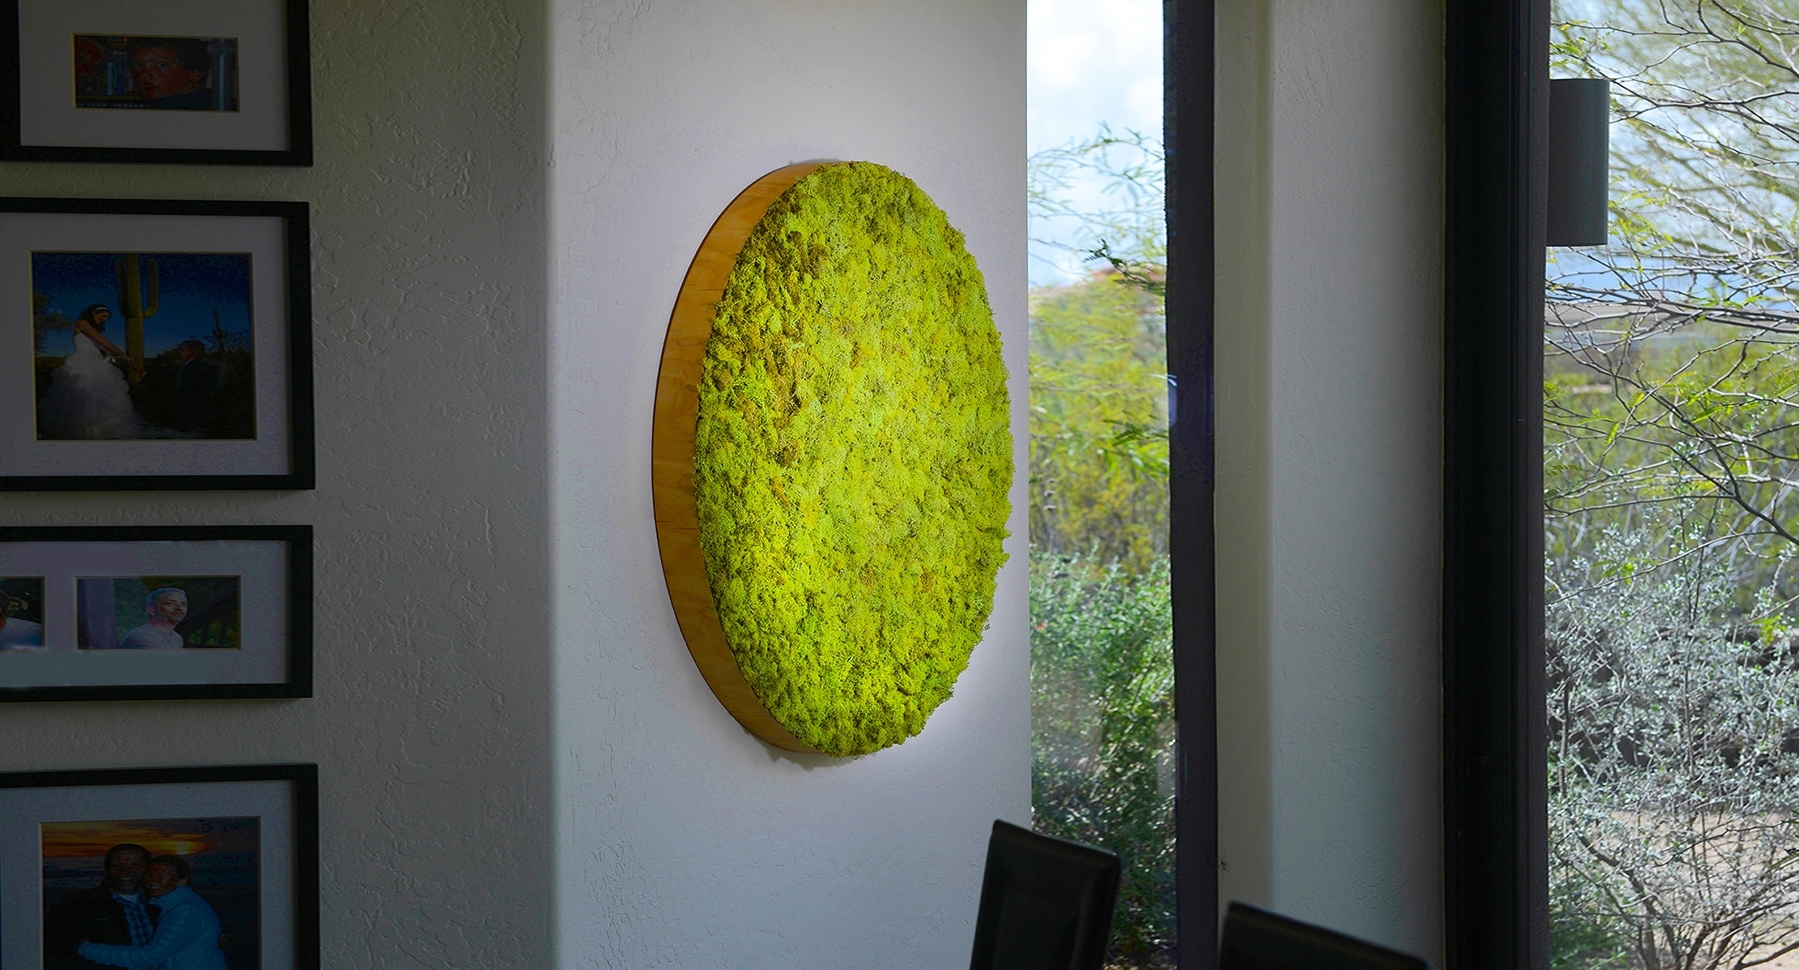 Widely Used Mosswallart Pieces For Sale Online – Best Living Artwork For Home Intended For Moss Wall Art (View 15 of 15)